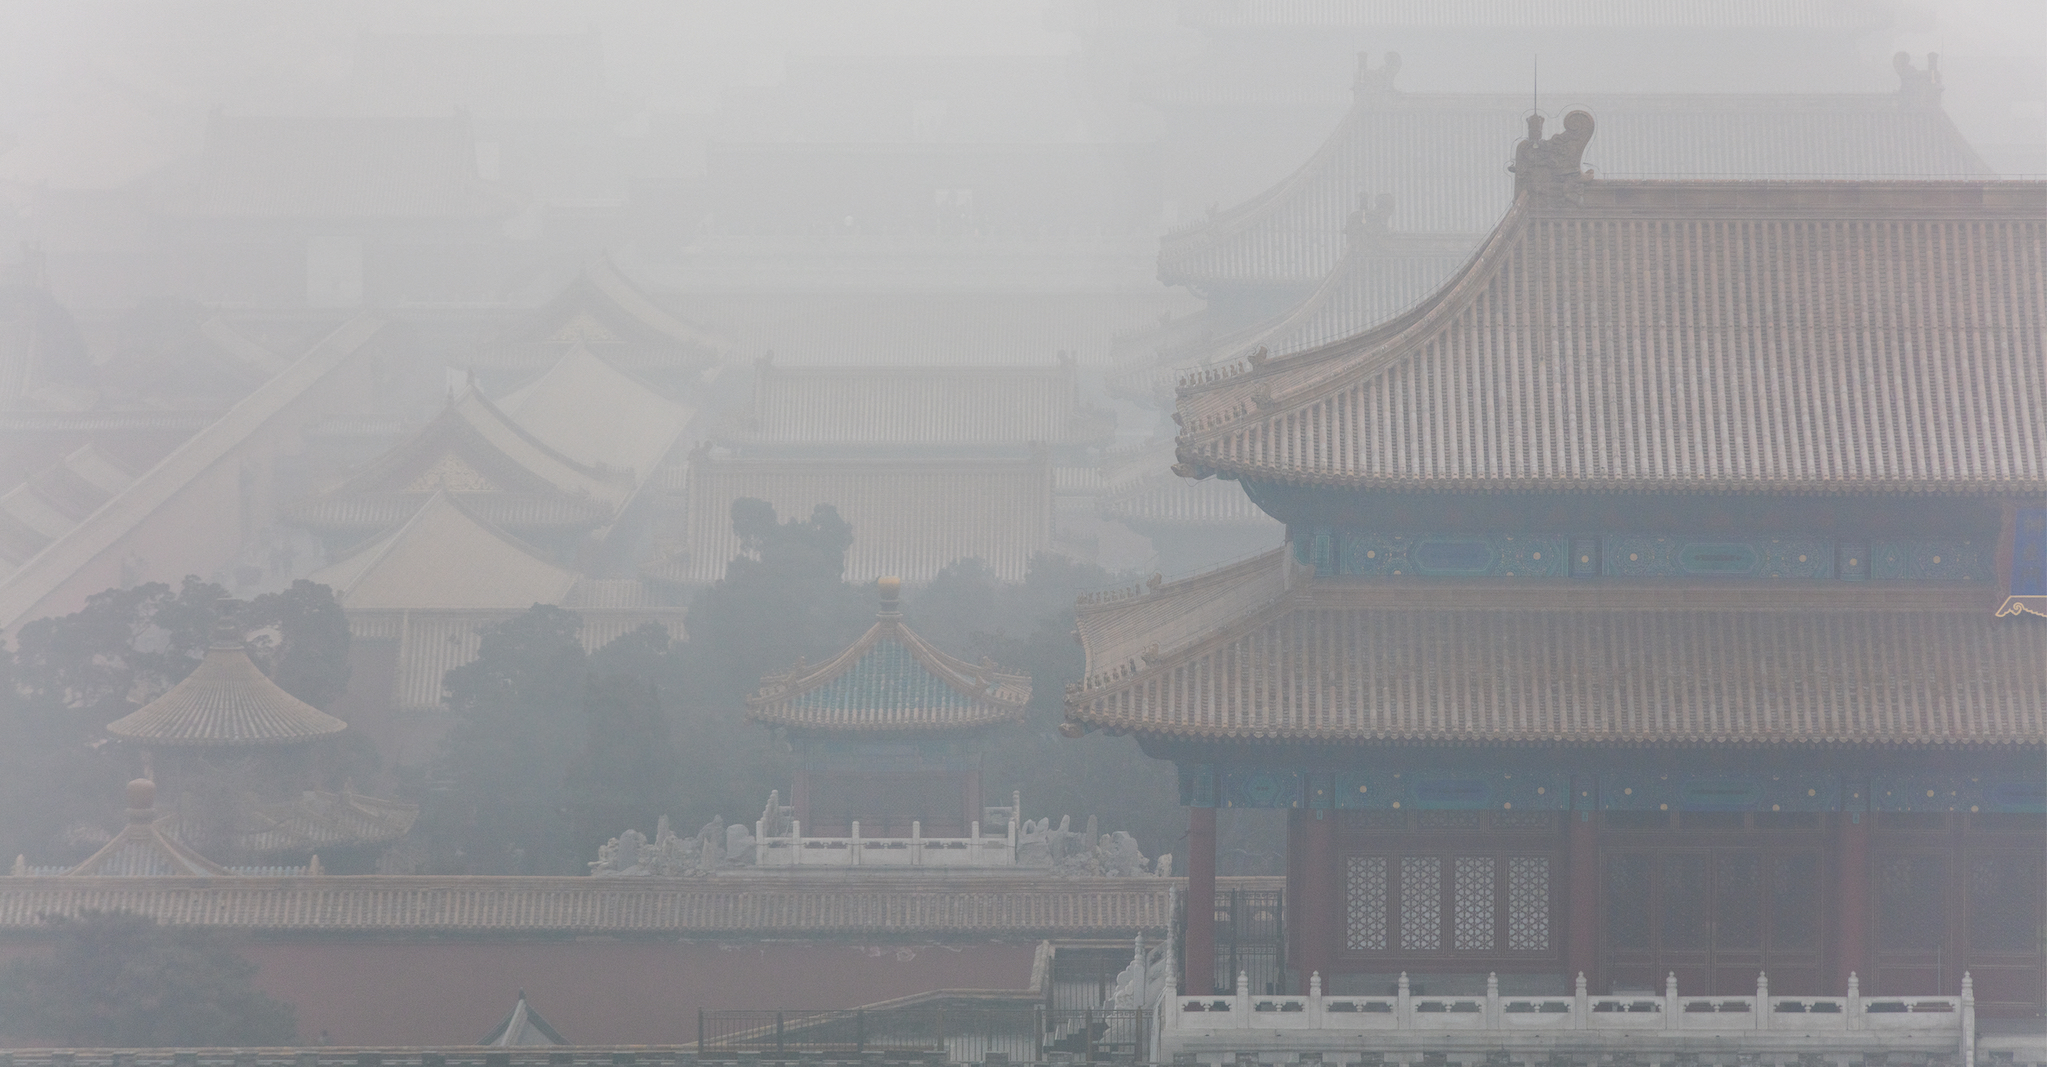 Chinese officials have approved an emissions trading system (ETS) in an effort to drastically reduce the country's carbon emissions.